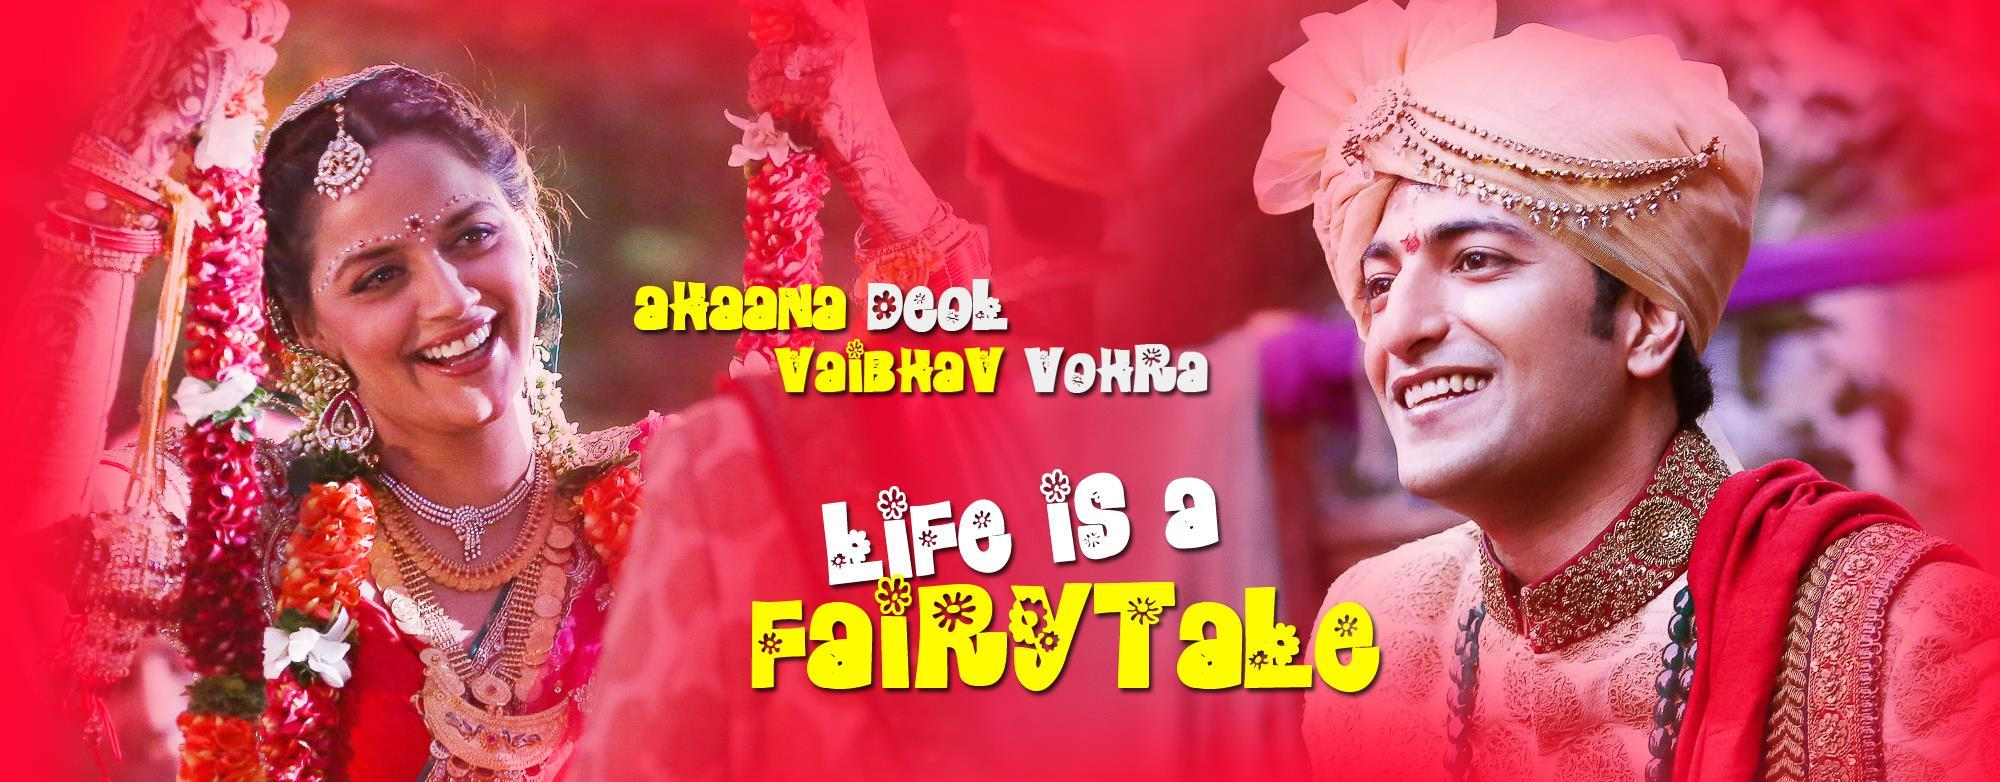 Bollywood Celebrity Wedding Film of Ahana Deol and Vaibhav Vohra